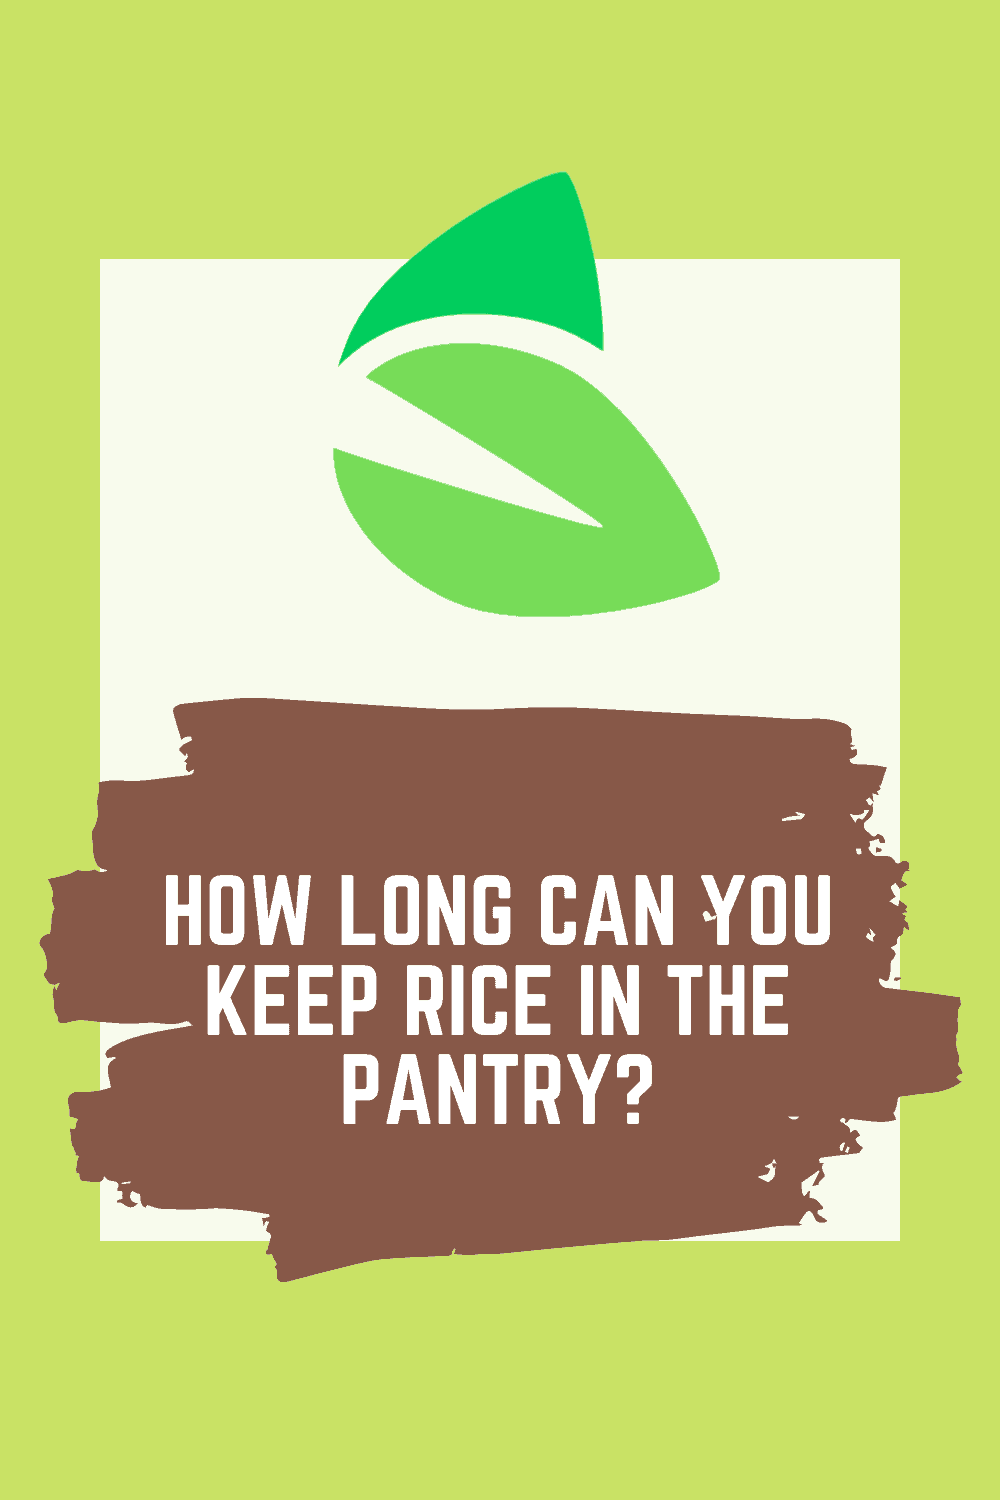 How Long Can You Keep Rice in the Pantry?